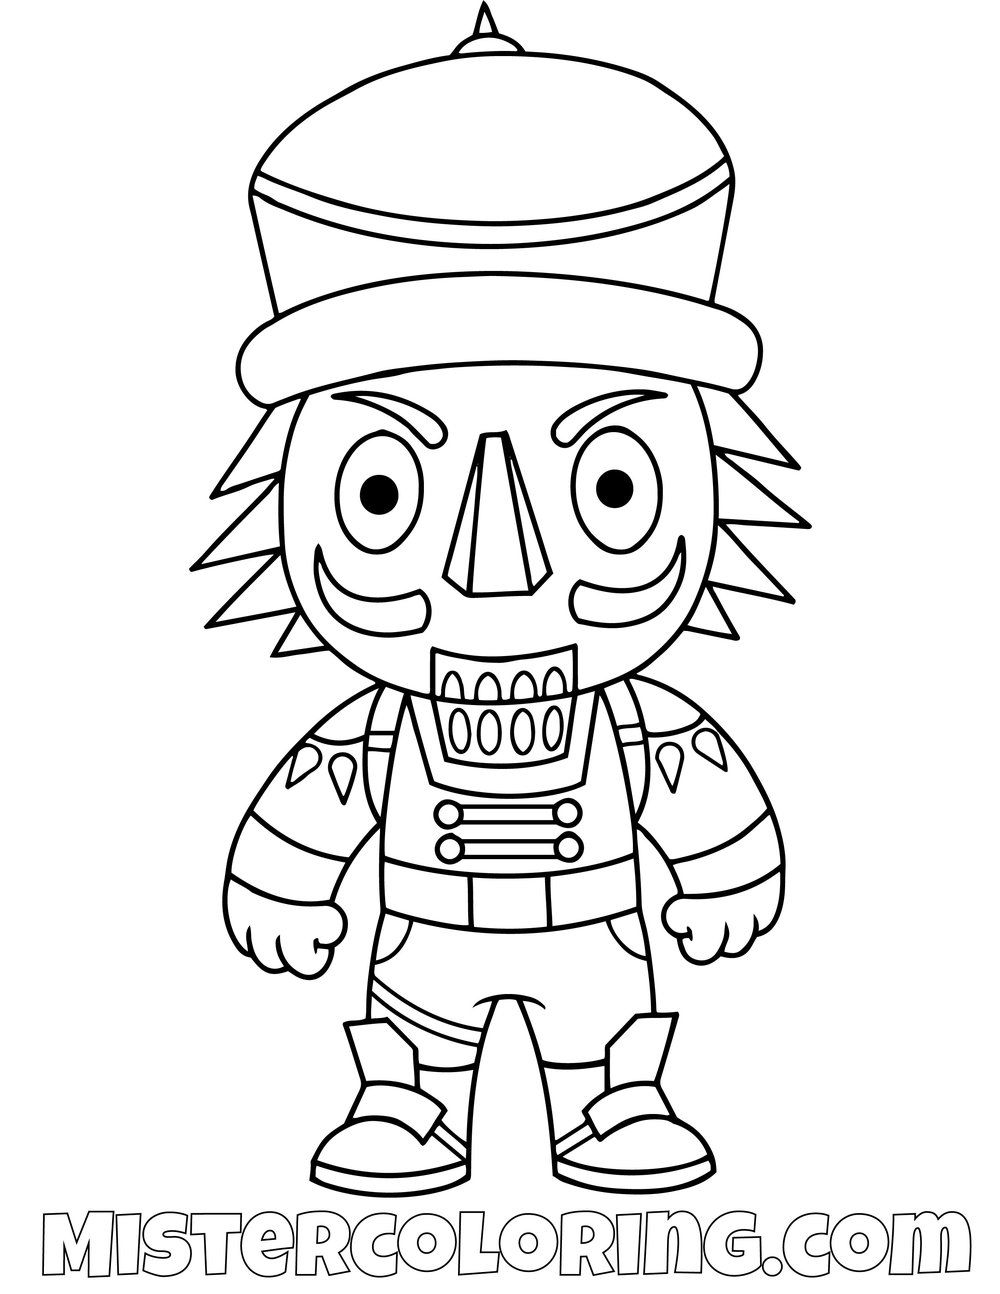 Free Crackshot Chibi Fortnite Coloring Page For Kids Cartoon